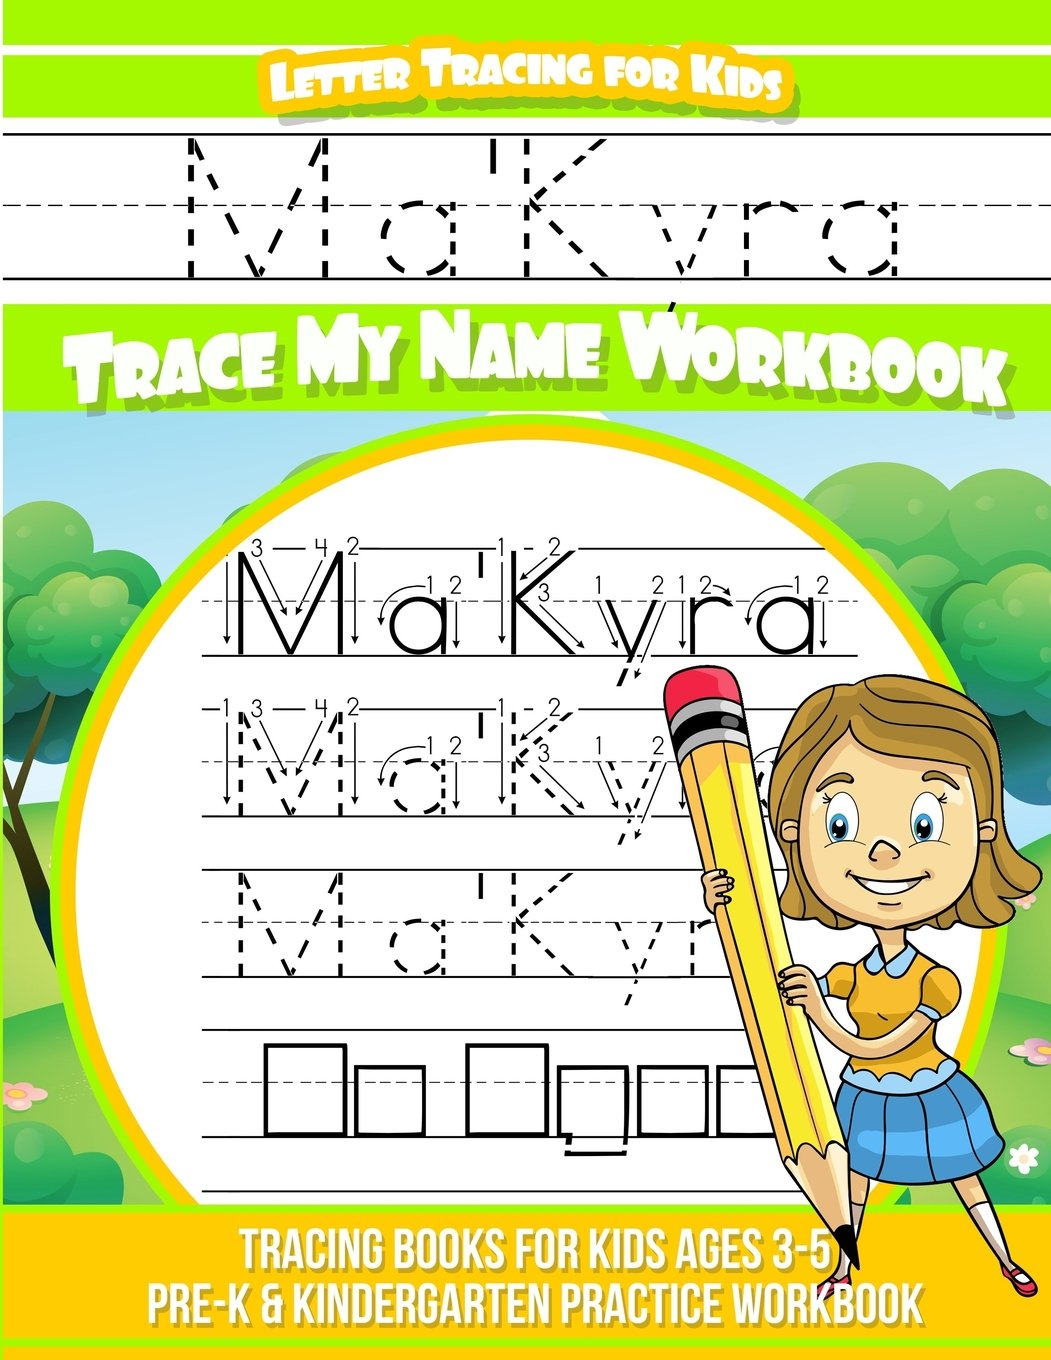 Ma'Kyra Letter Tracing for Kids Trace my Name Workbook: Tracing Books for Kids ages 3-5 Pre-K & Kindergarten Practice Workbook pdf epub